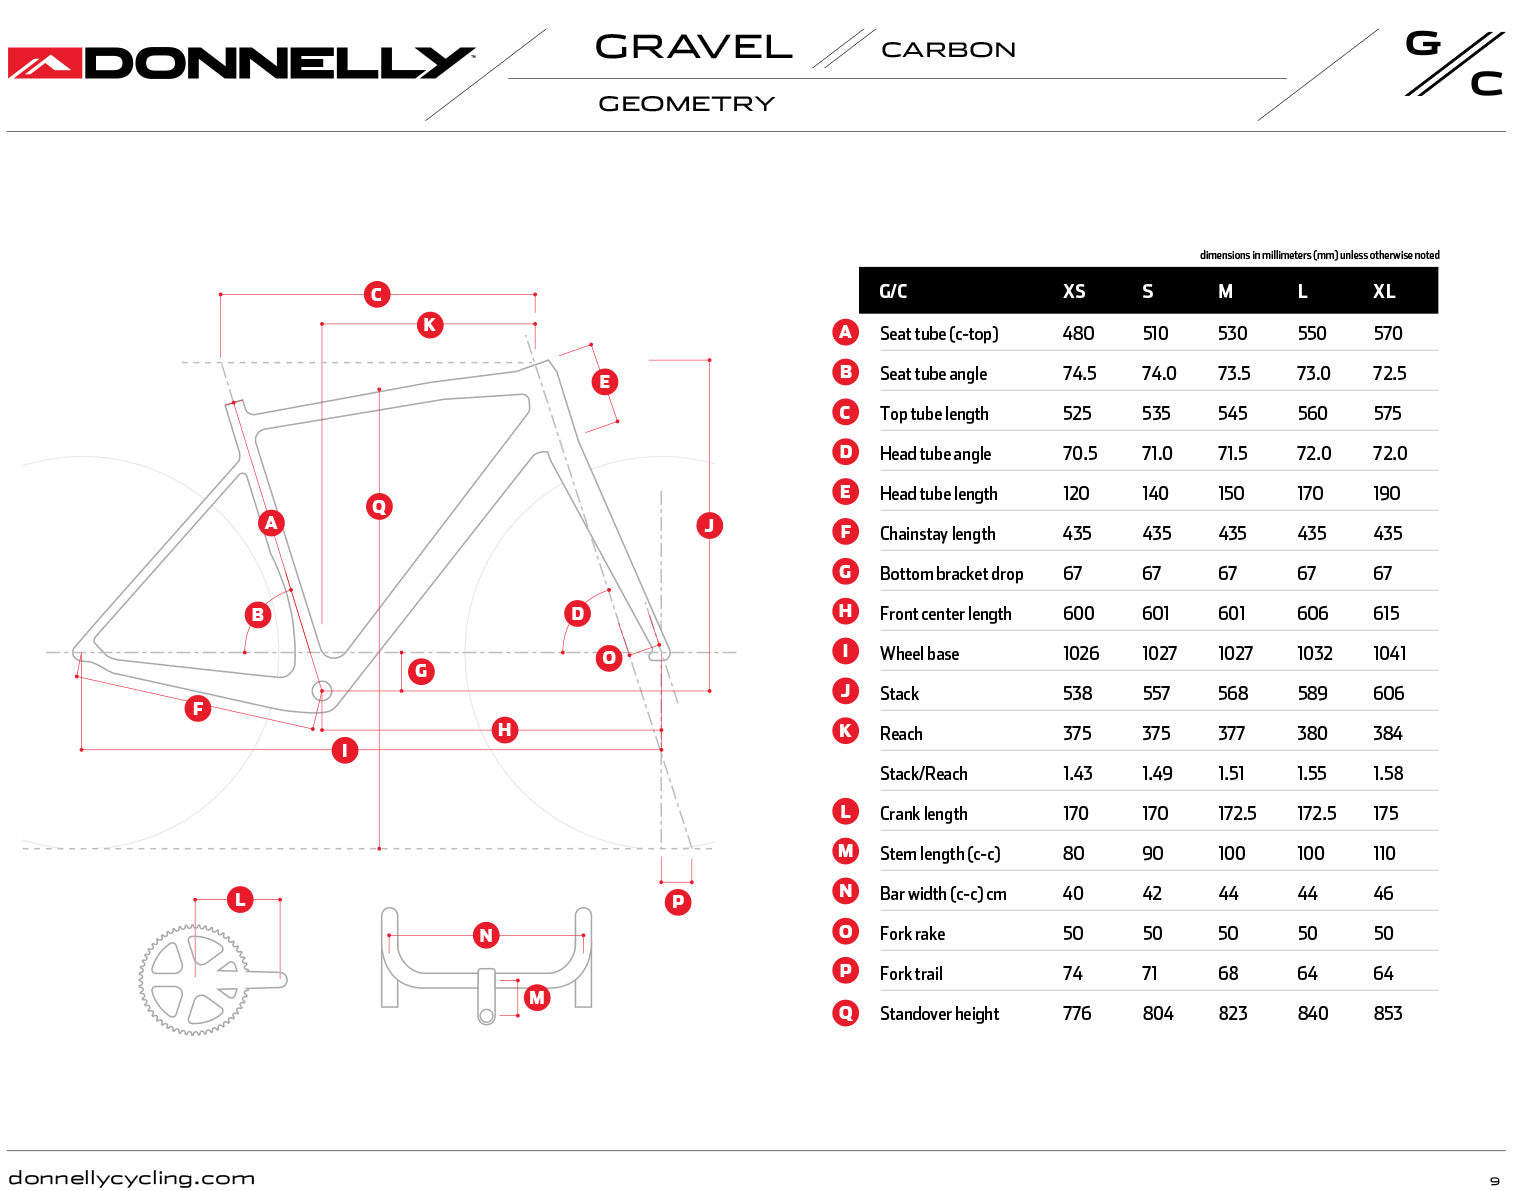 Donnelly G//C Gravel Carbon bike geometry chart